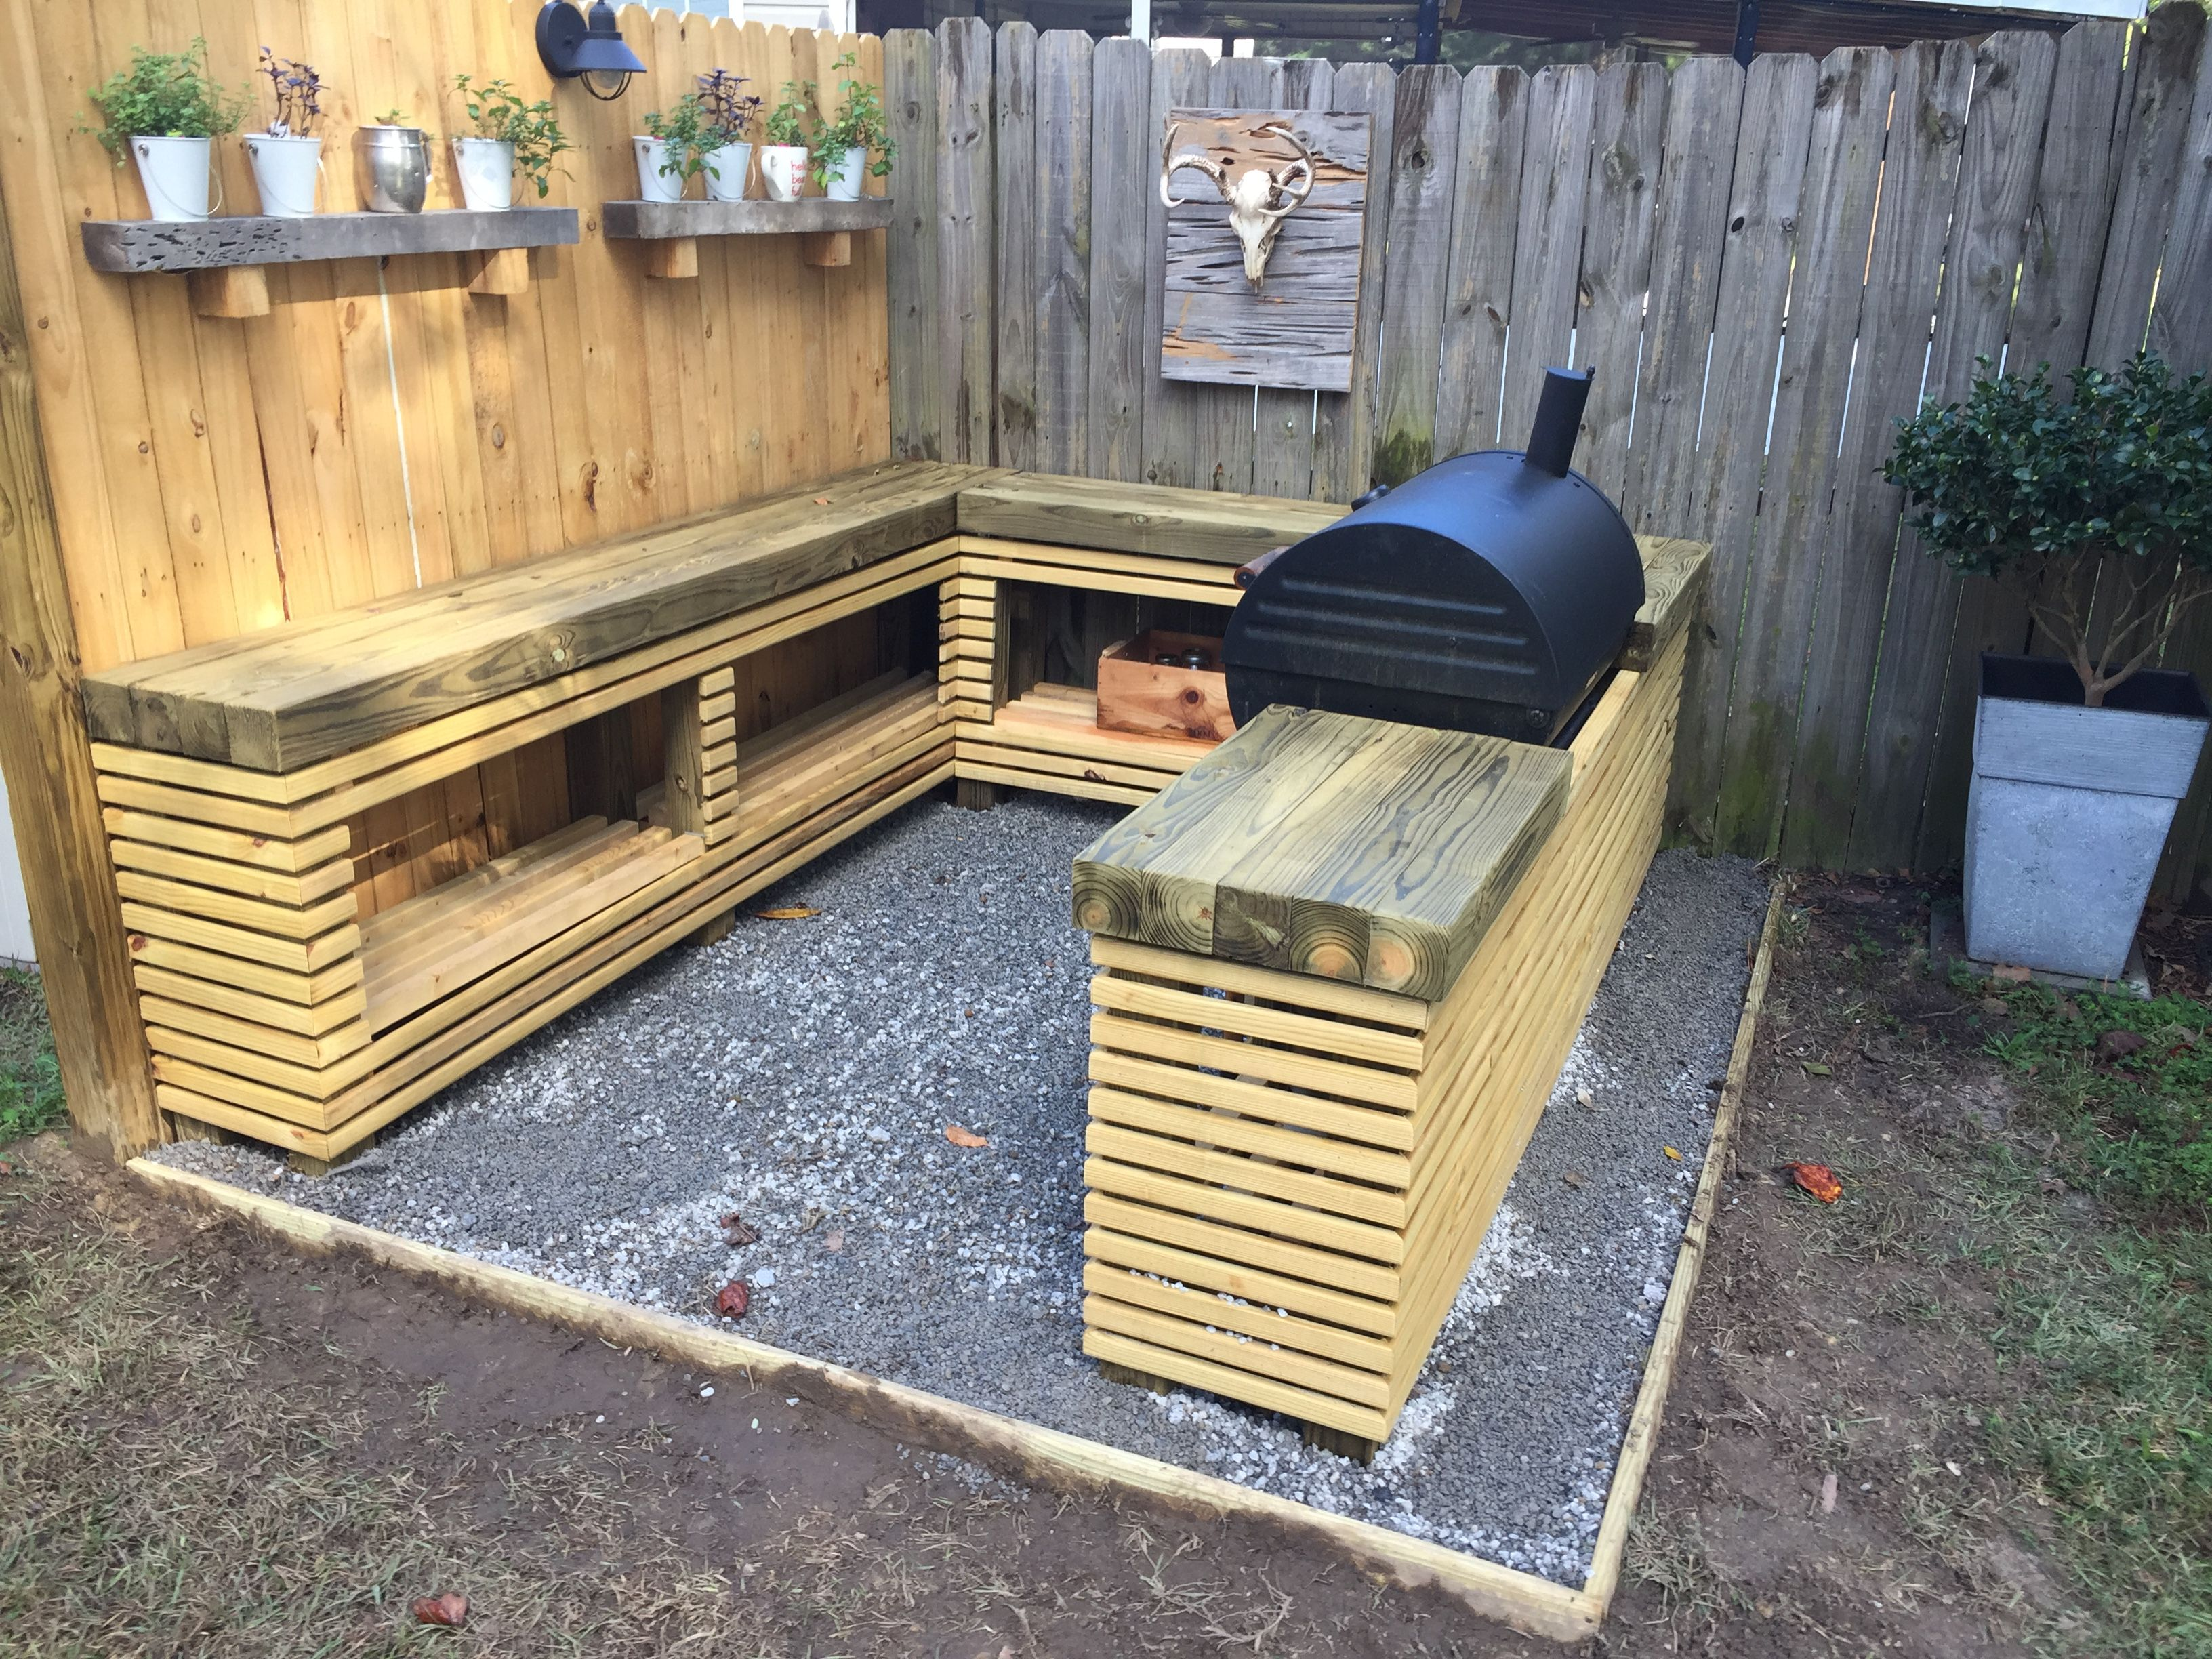 outdoor grilling area 4x4 countertops with 1x2 slatted lower rh pinterest com